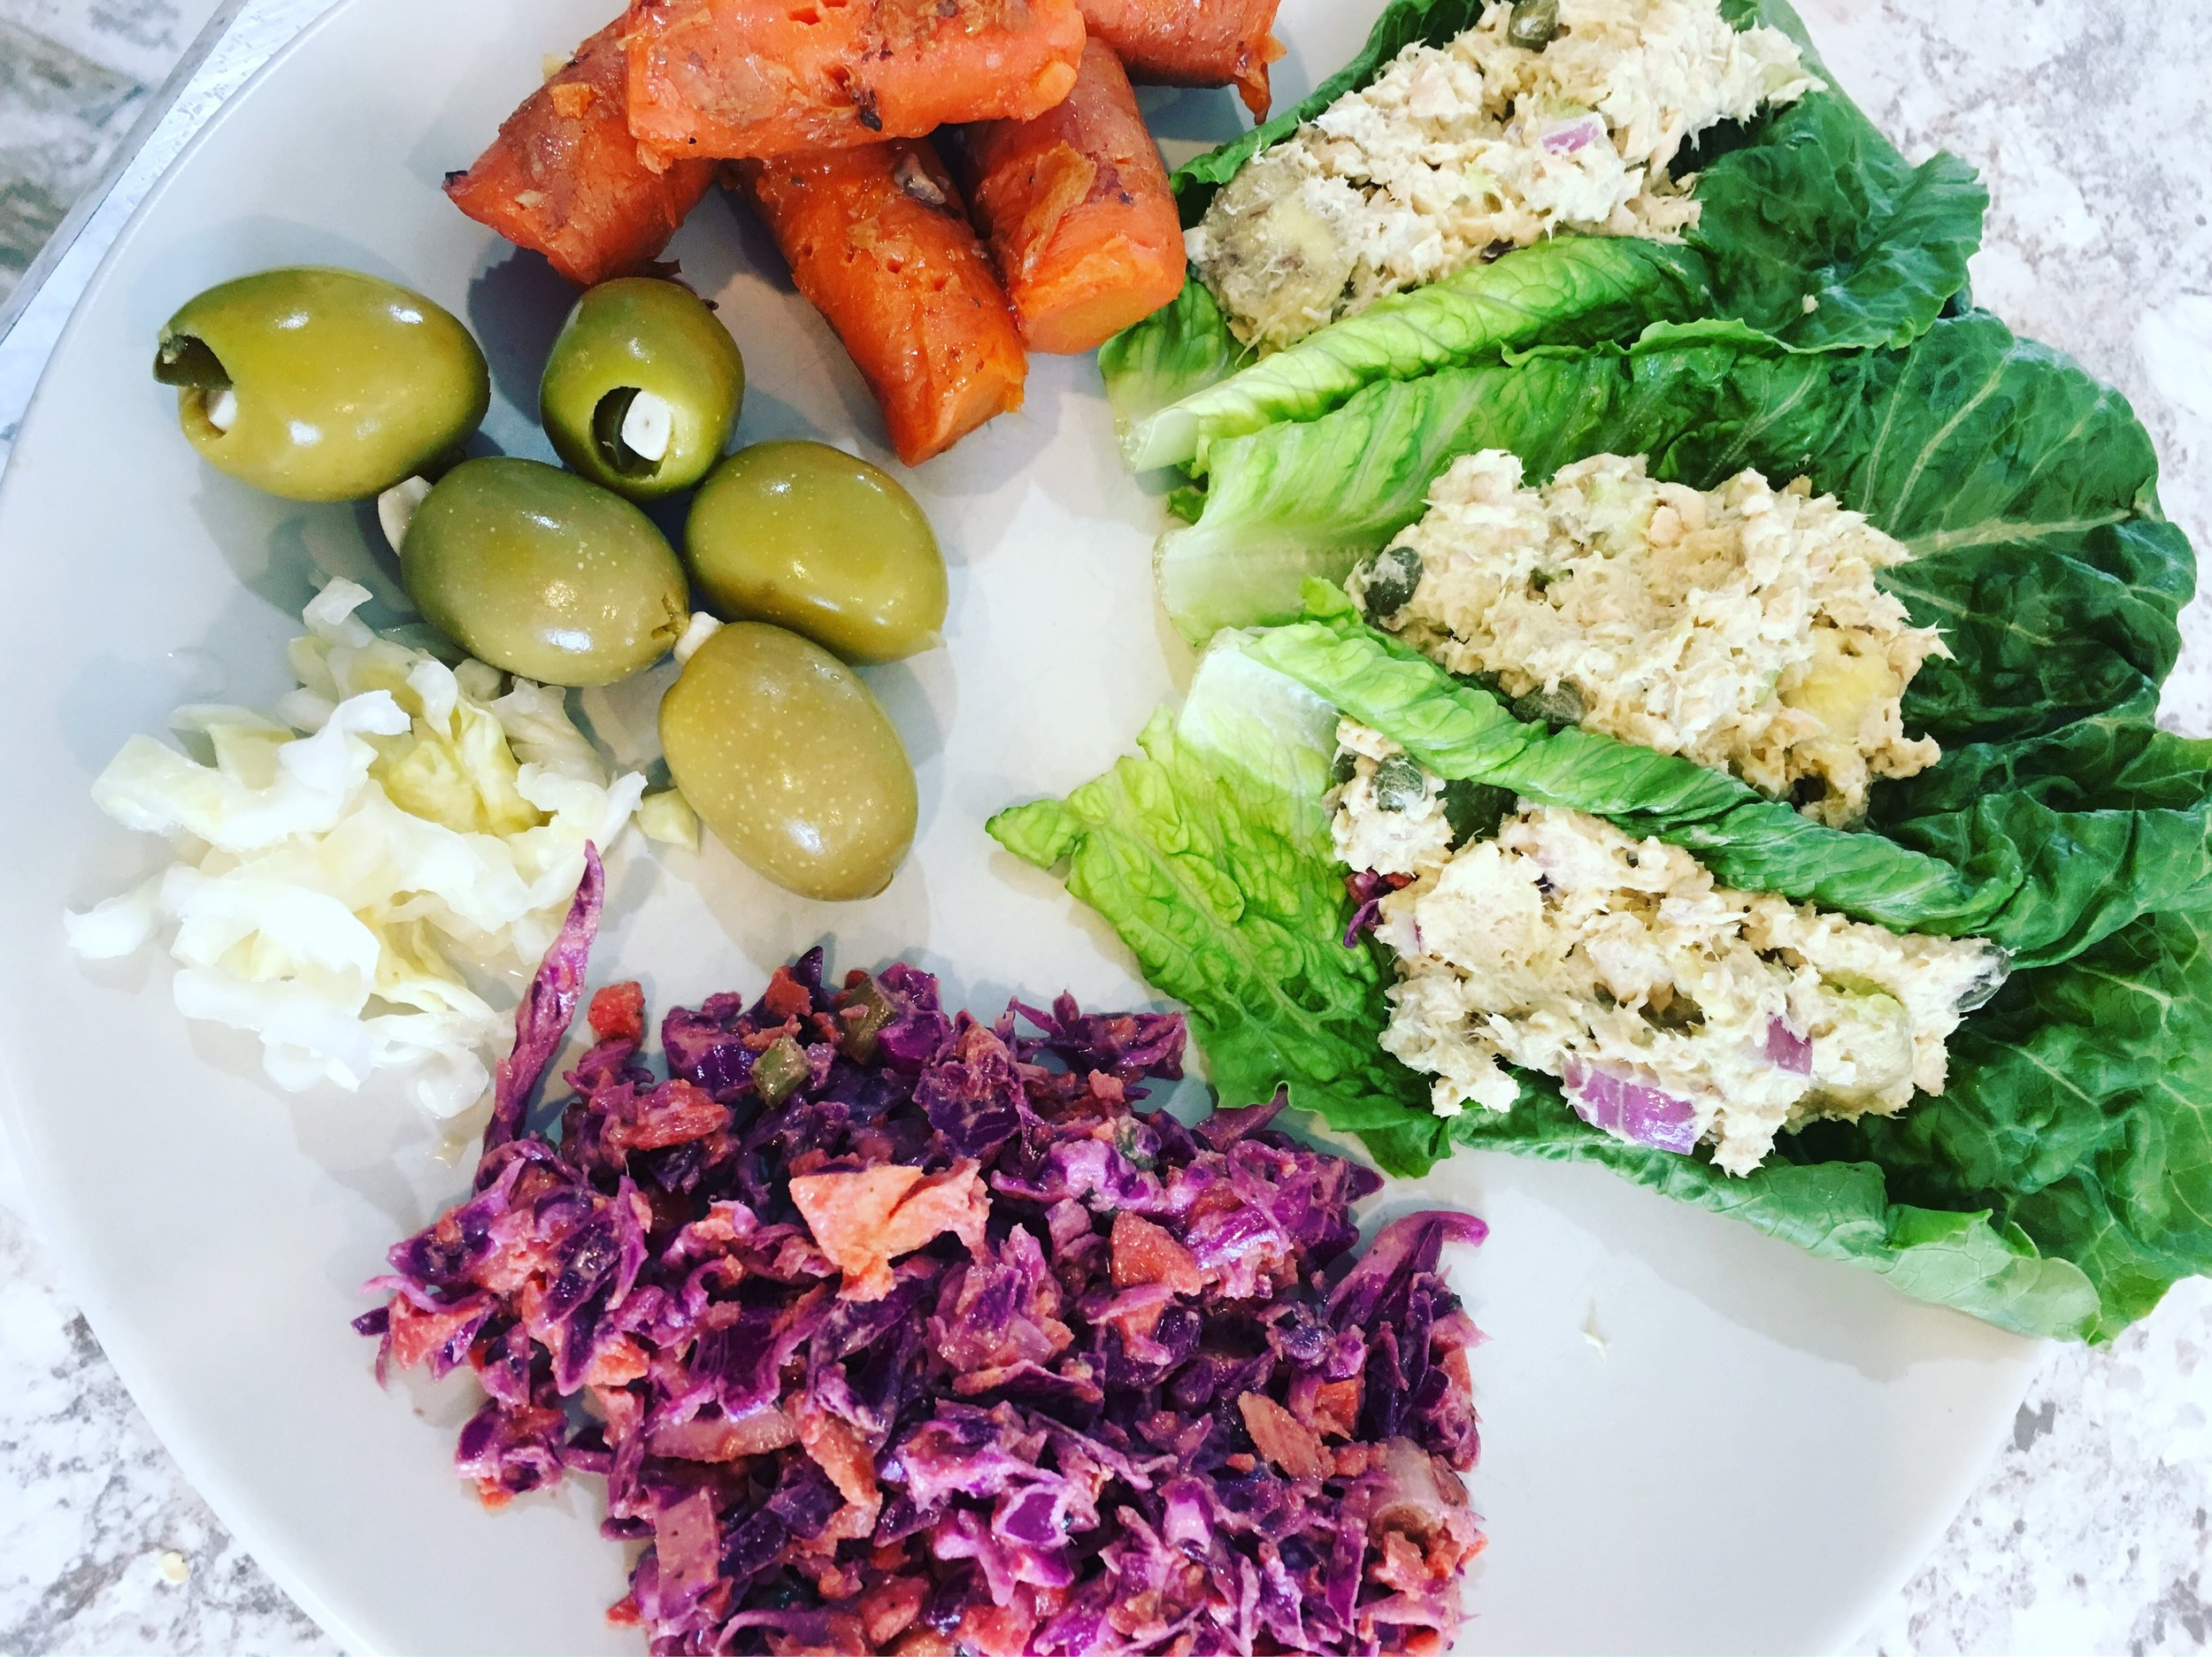 rosemary carrots, green olives, 'kraut, mexican slaw, and tuna salad wraps